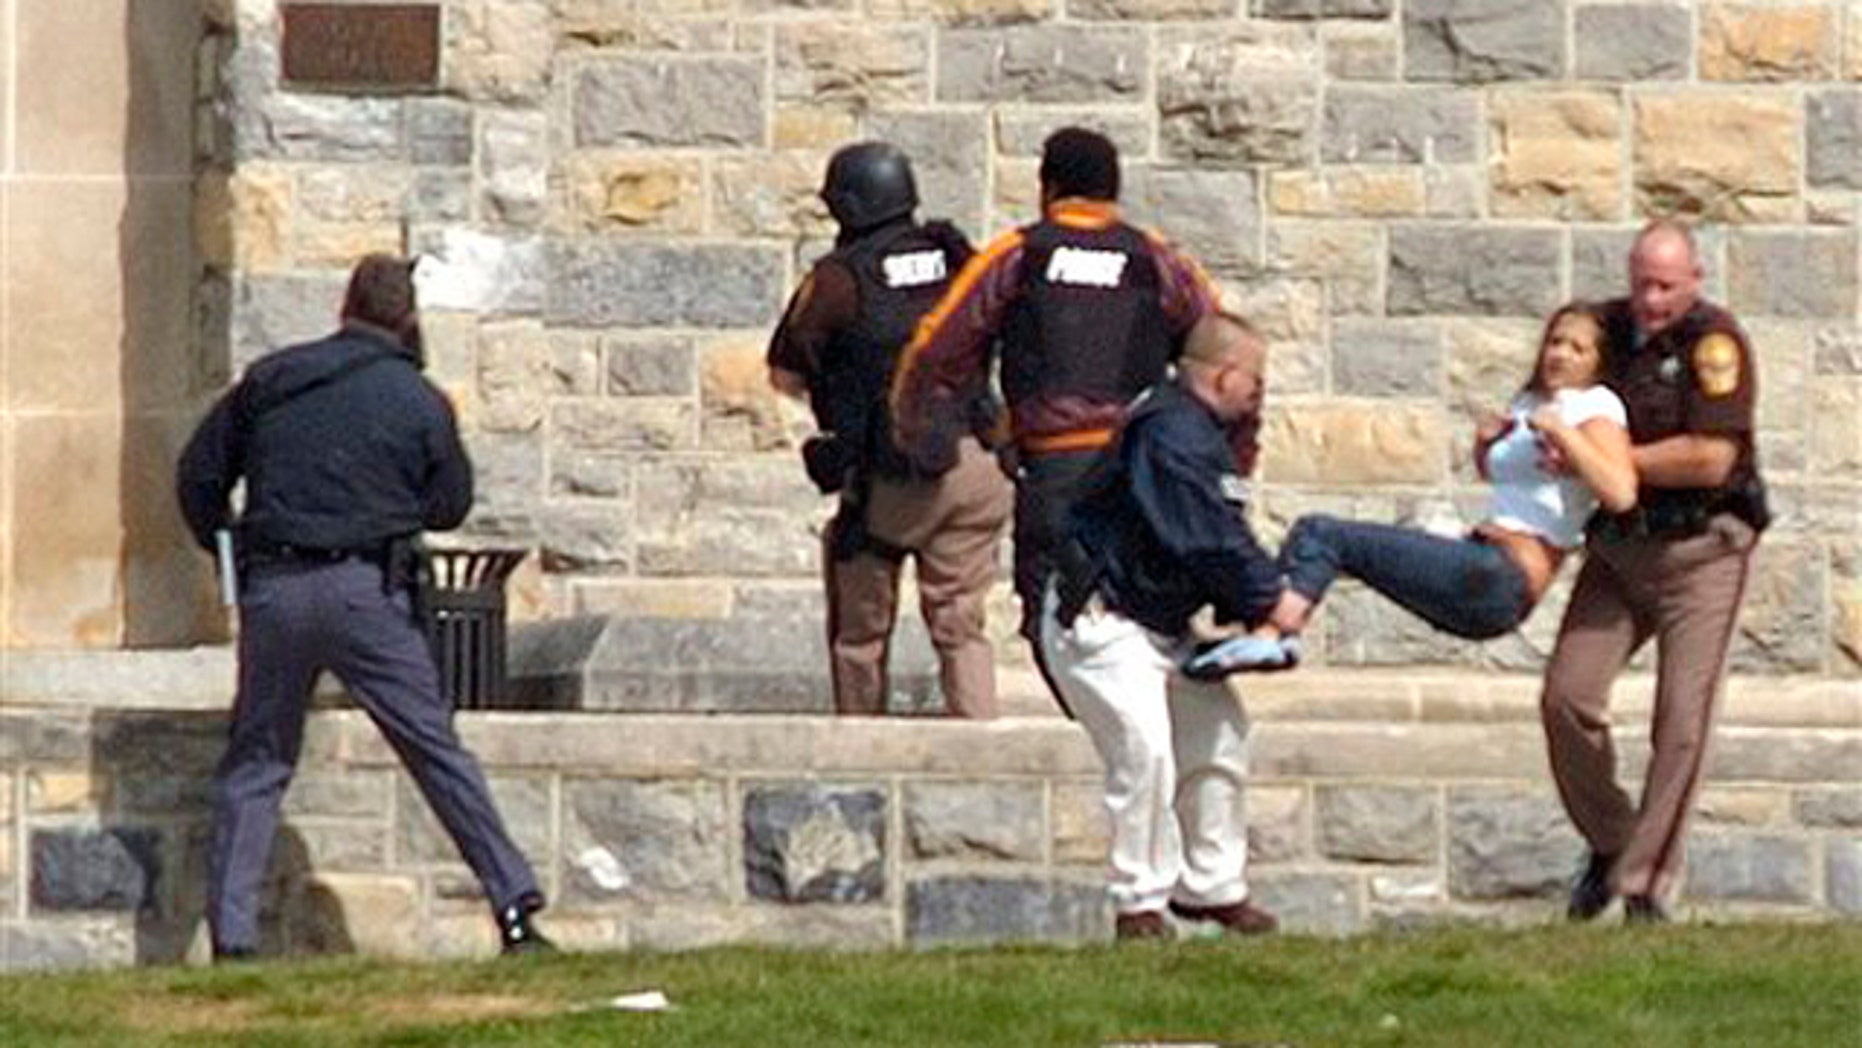 In this April 16, 2007 file photo, injured occupants are carried out of Norris Hall at Virginia Tech in Blacksburg, Va., where student gunman Seung-Hui Cho went on a shooting rampage that left 33 dead, including himself.